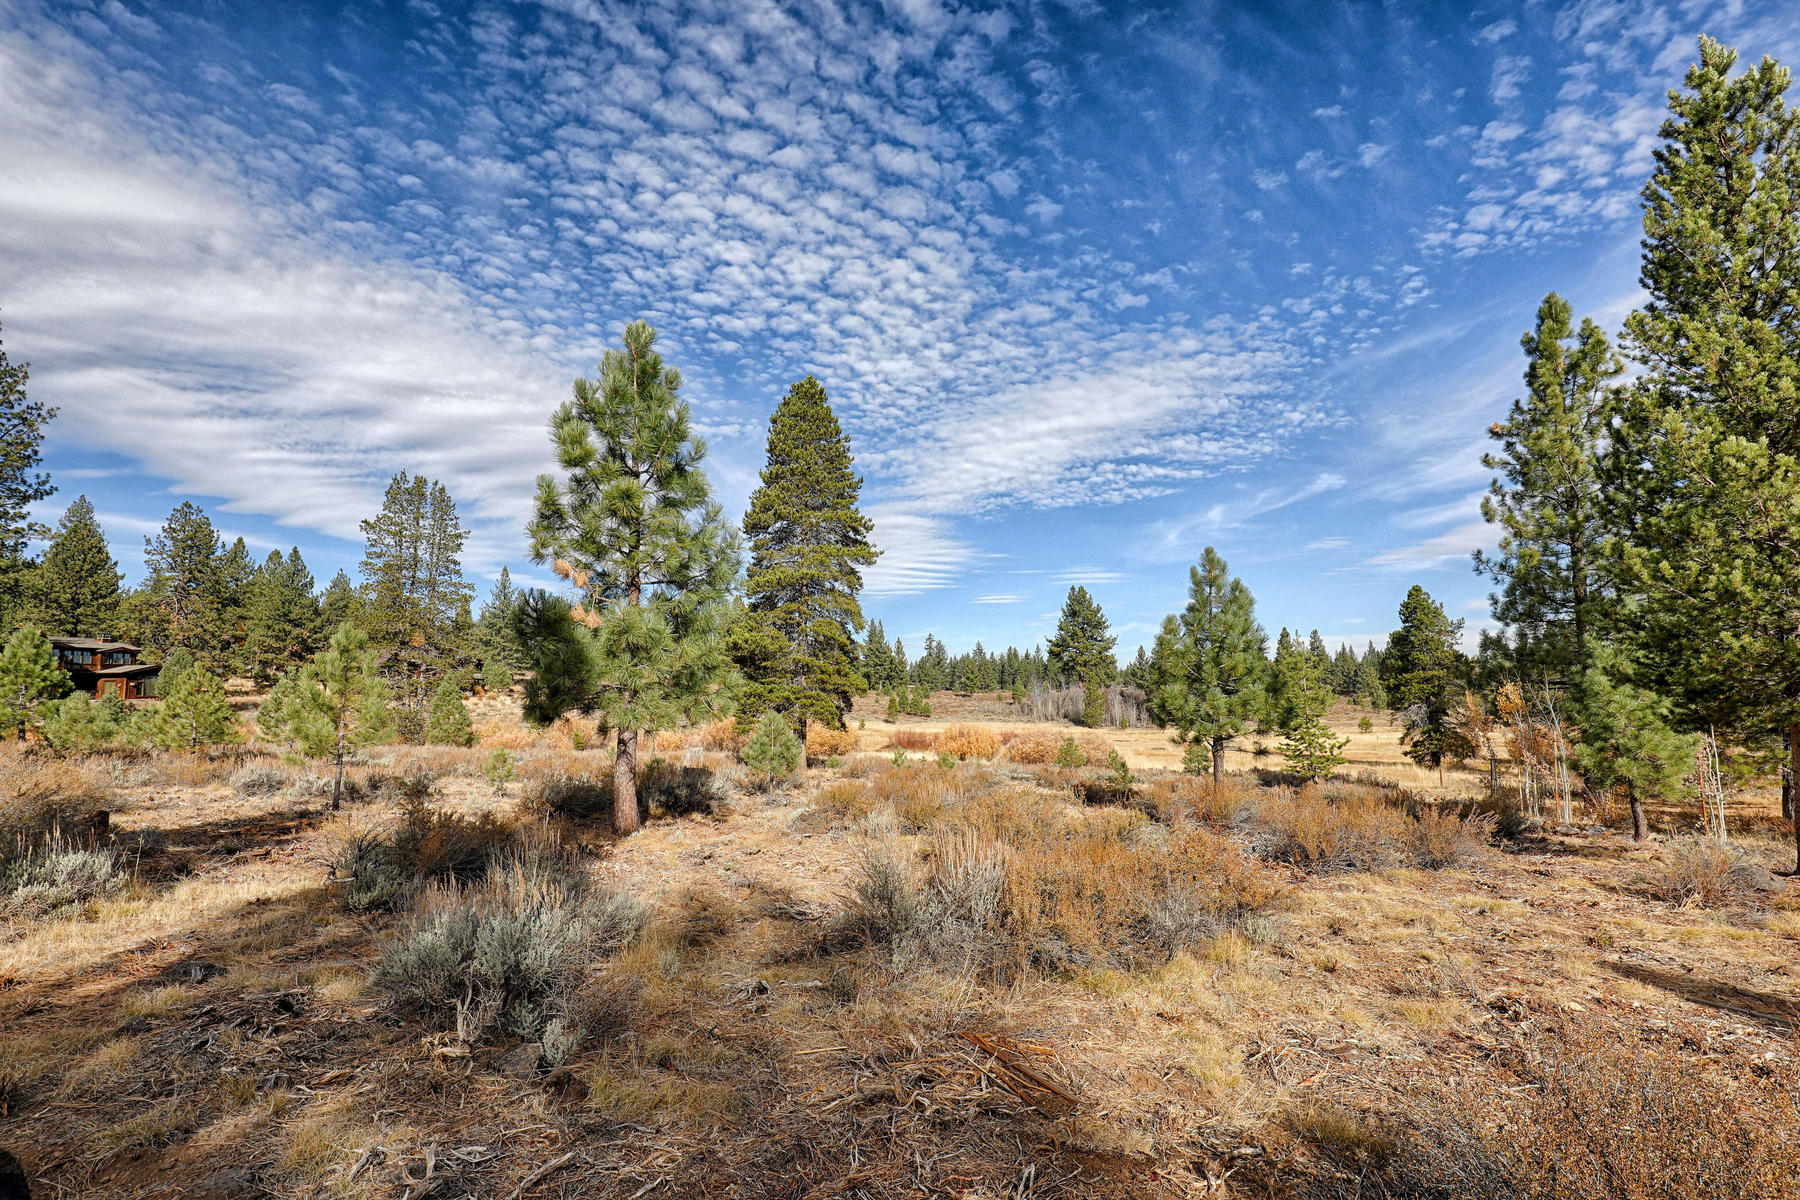 Land for Active at 13185 Snowshoe Thompson Cir, Truckee, Ca 96161 13185 Snowshoe Thompson Cir Truckee, California 96161 United States